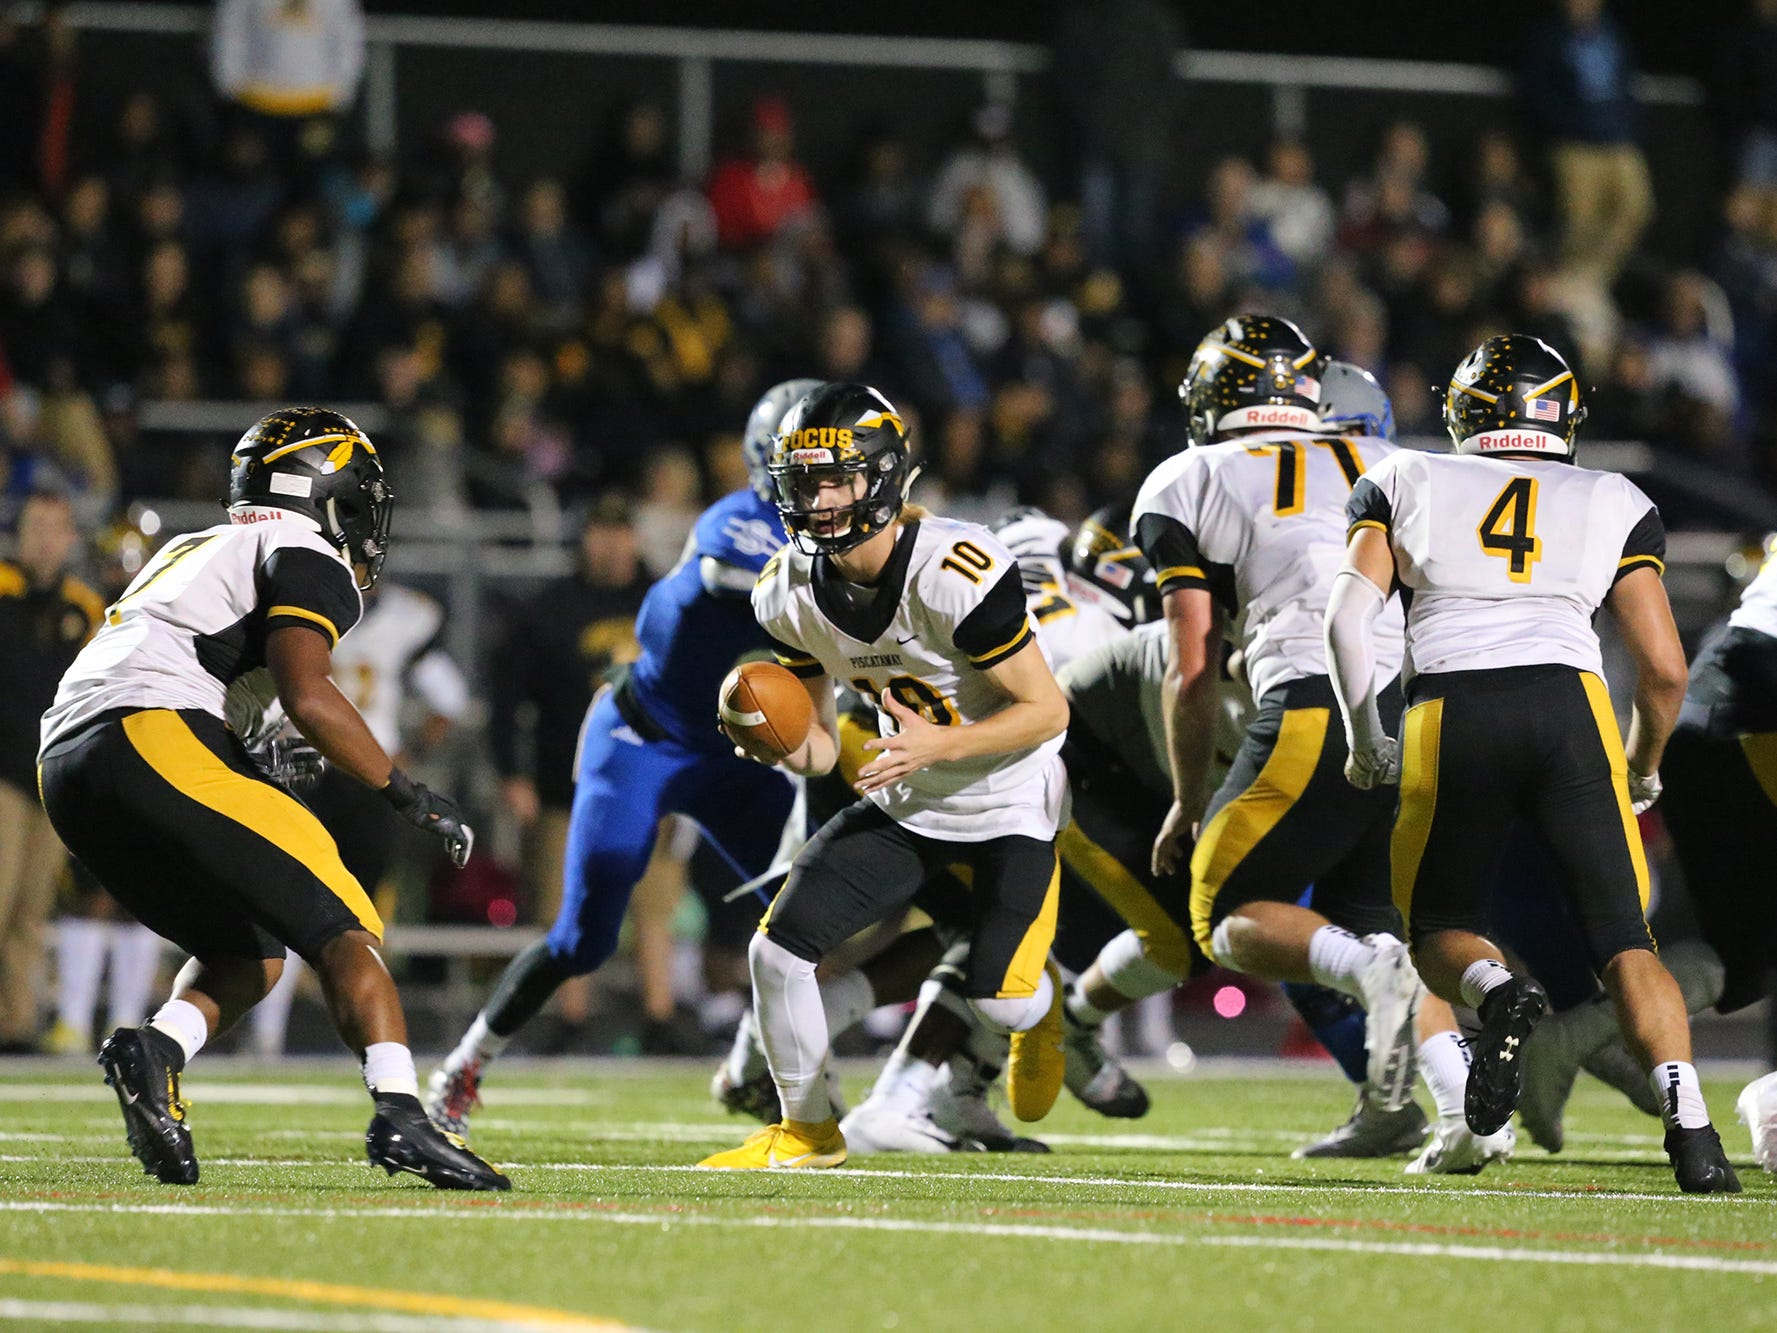 Piscataway at Sayreville football on Friday, Oct. 19, 2018.